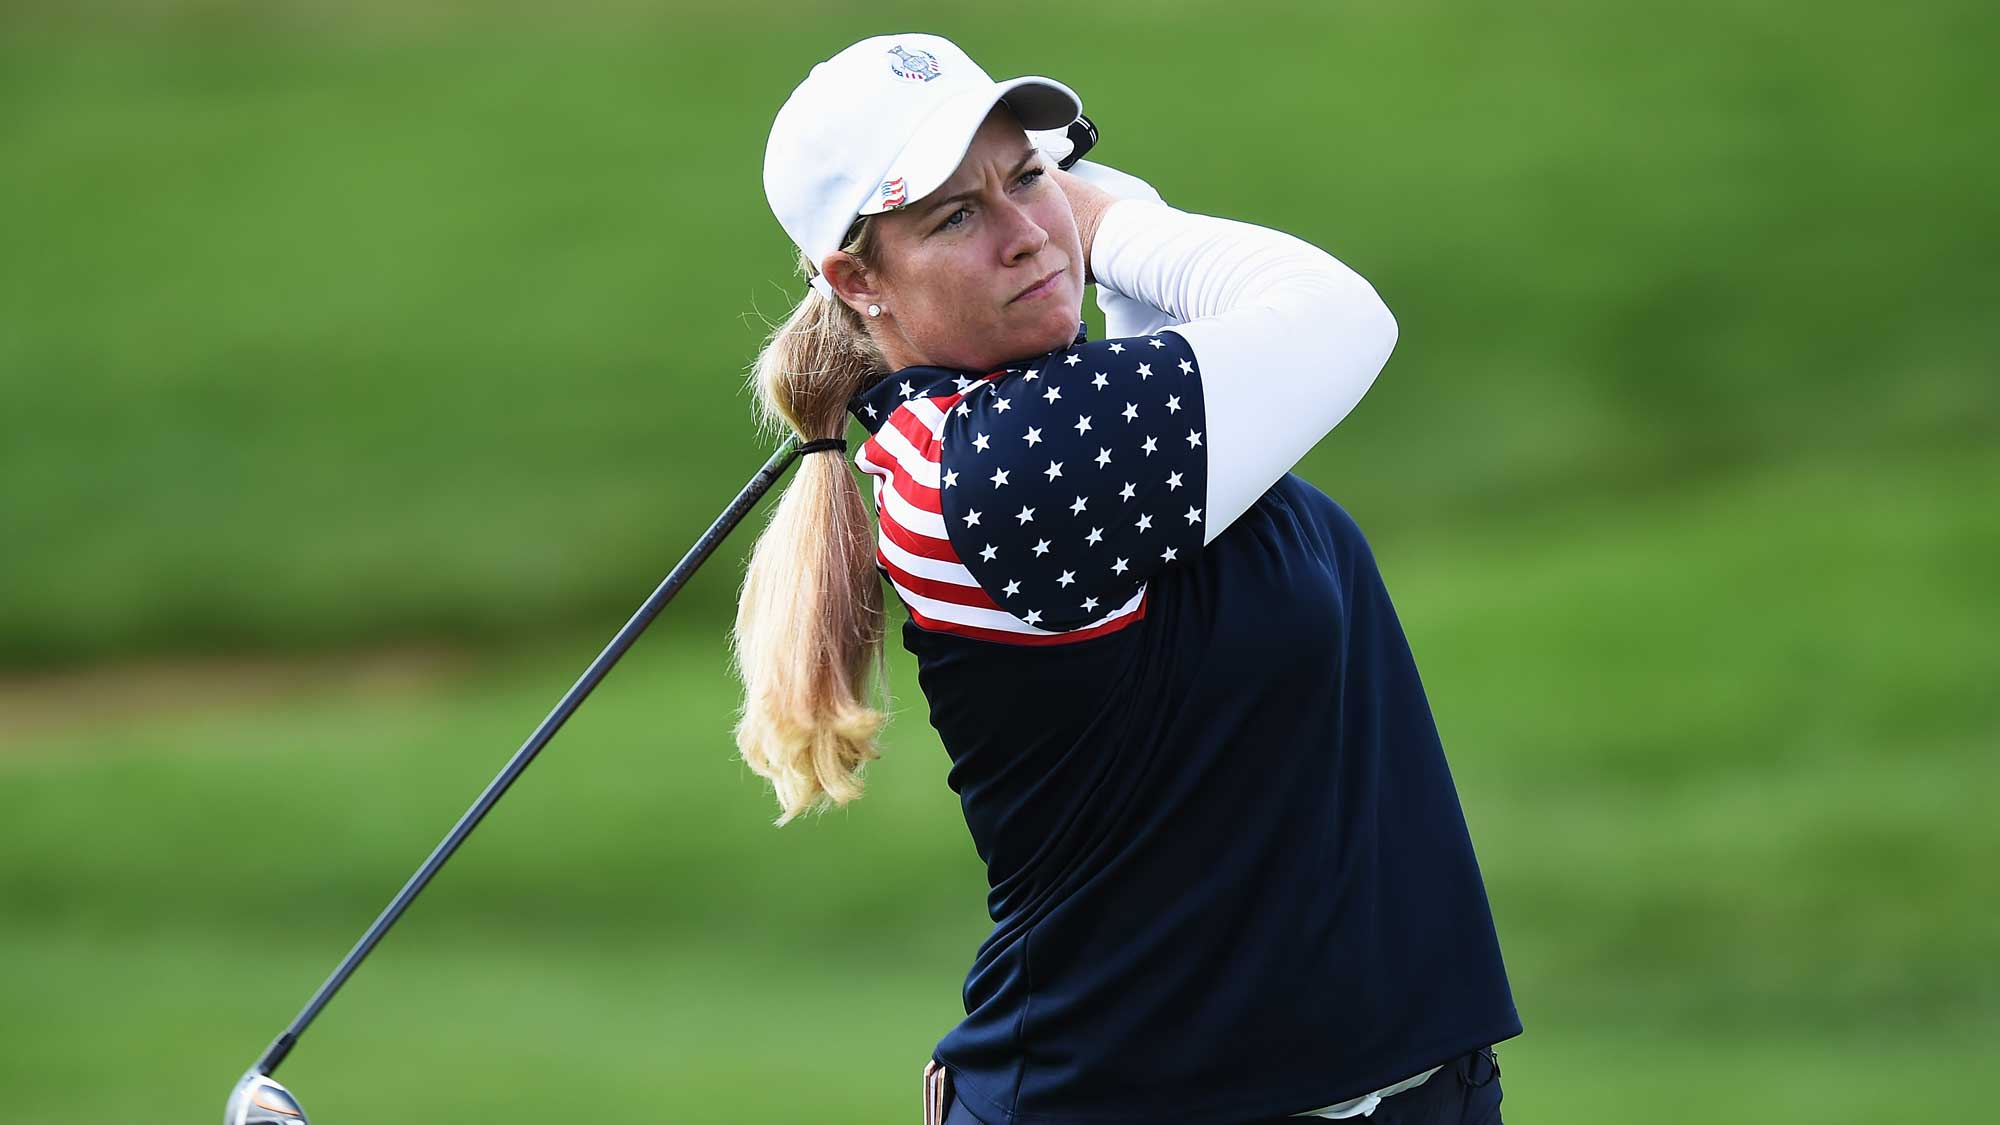 Brittany Linicome of team USA plays a shot during the singles matches of the 2015 Solheim Cup